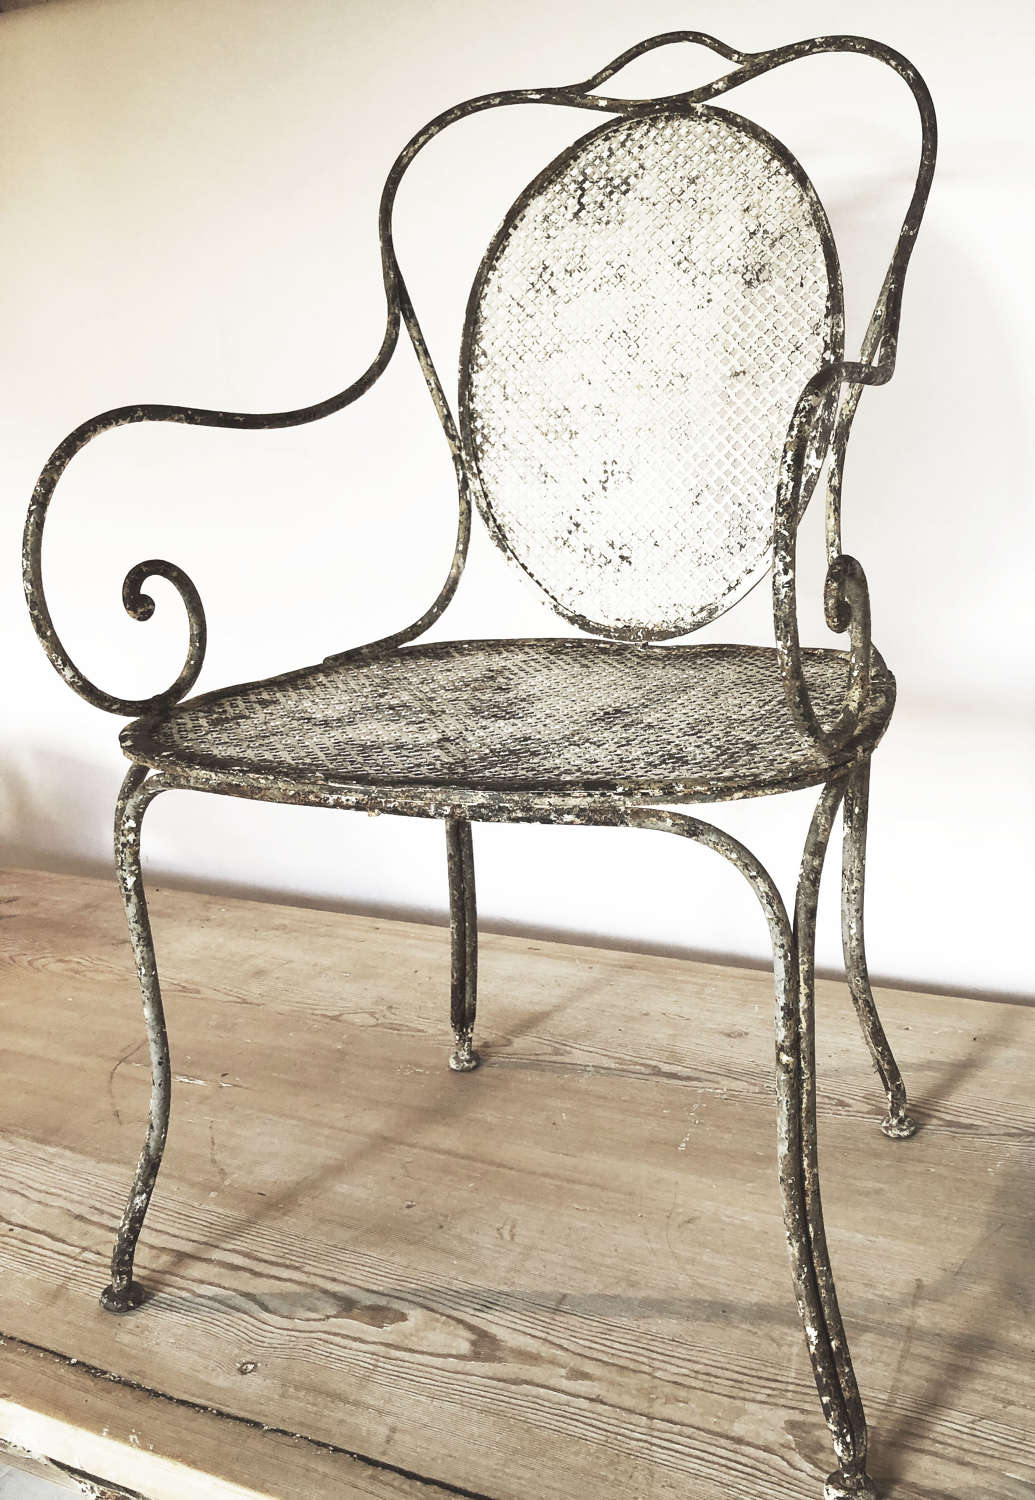 Late 19th c single French Iron Chair - circa 1890